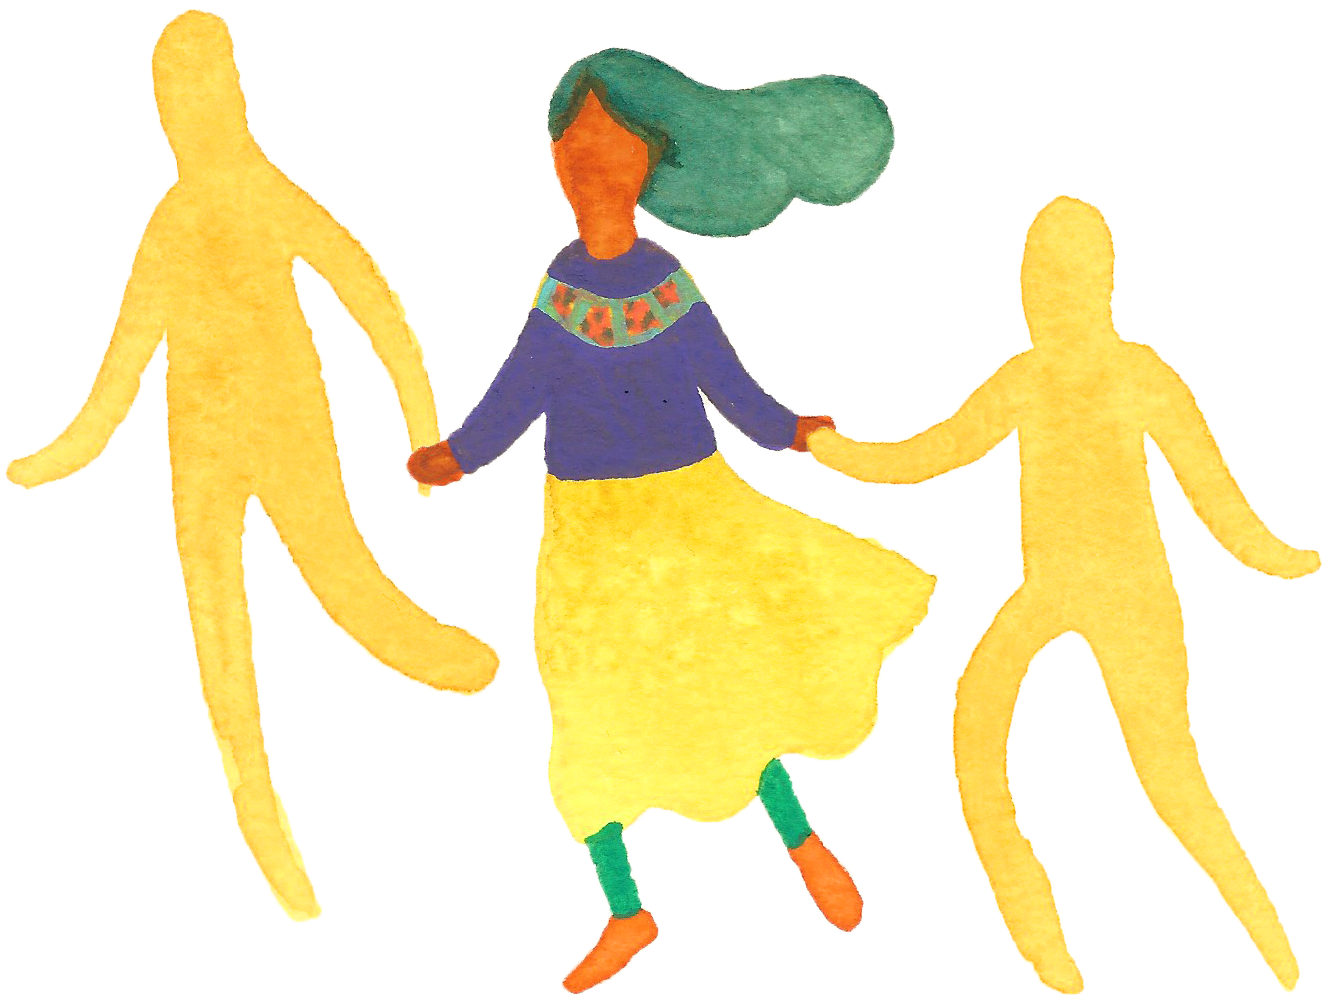 Transparent kids holding hands clipart - Circle Dancing - Flowers Dancing In Circle